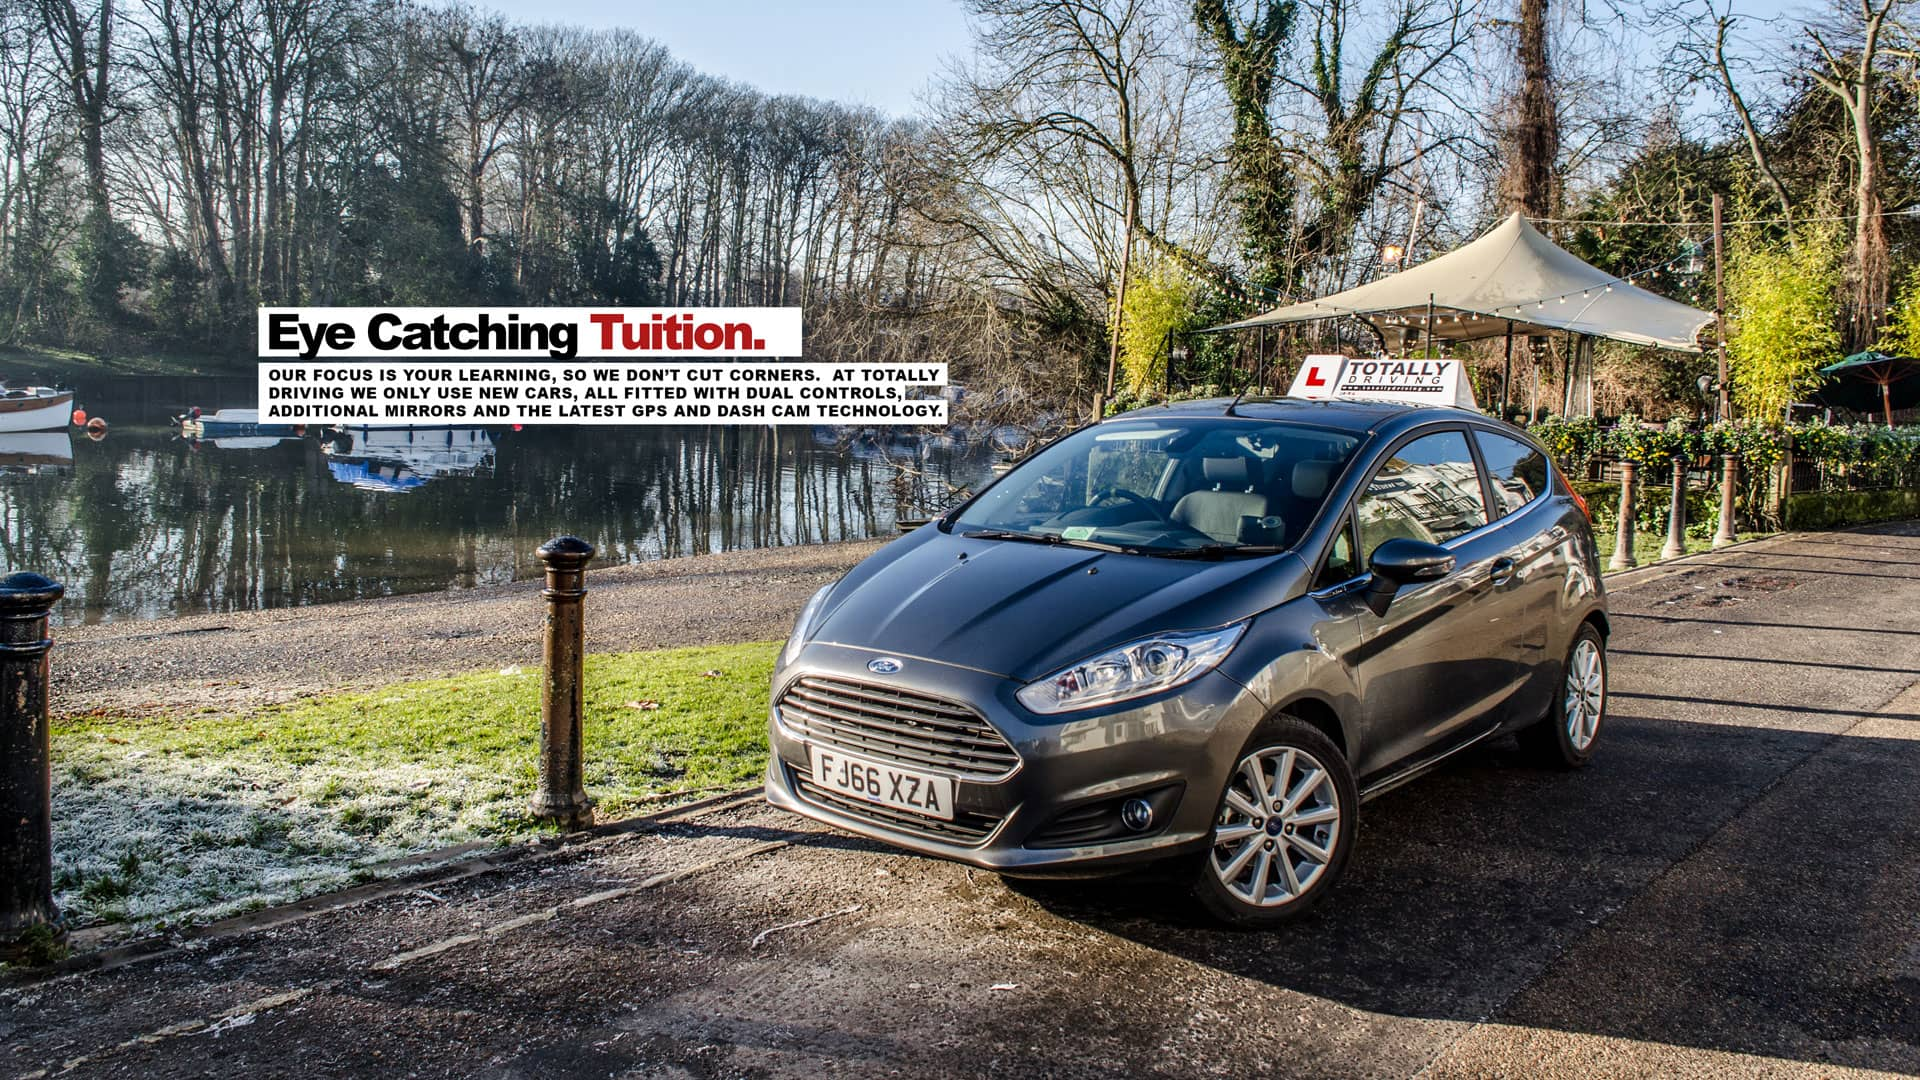 New Car for Driving Lessons in Surrey